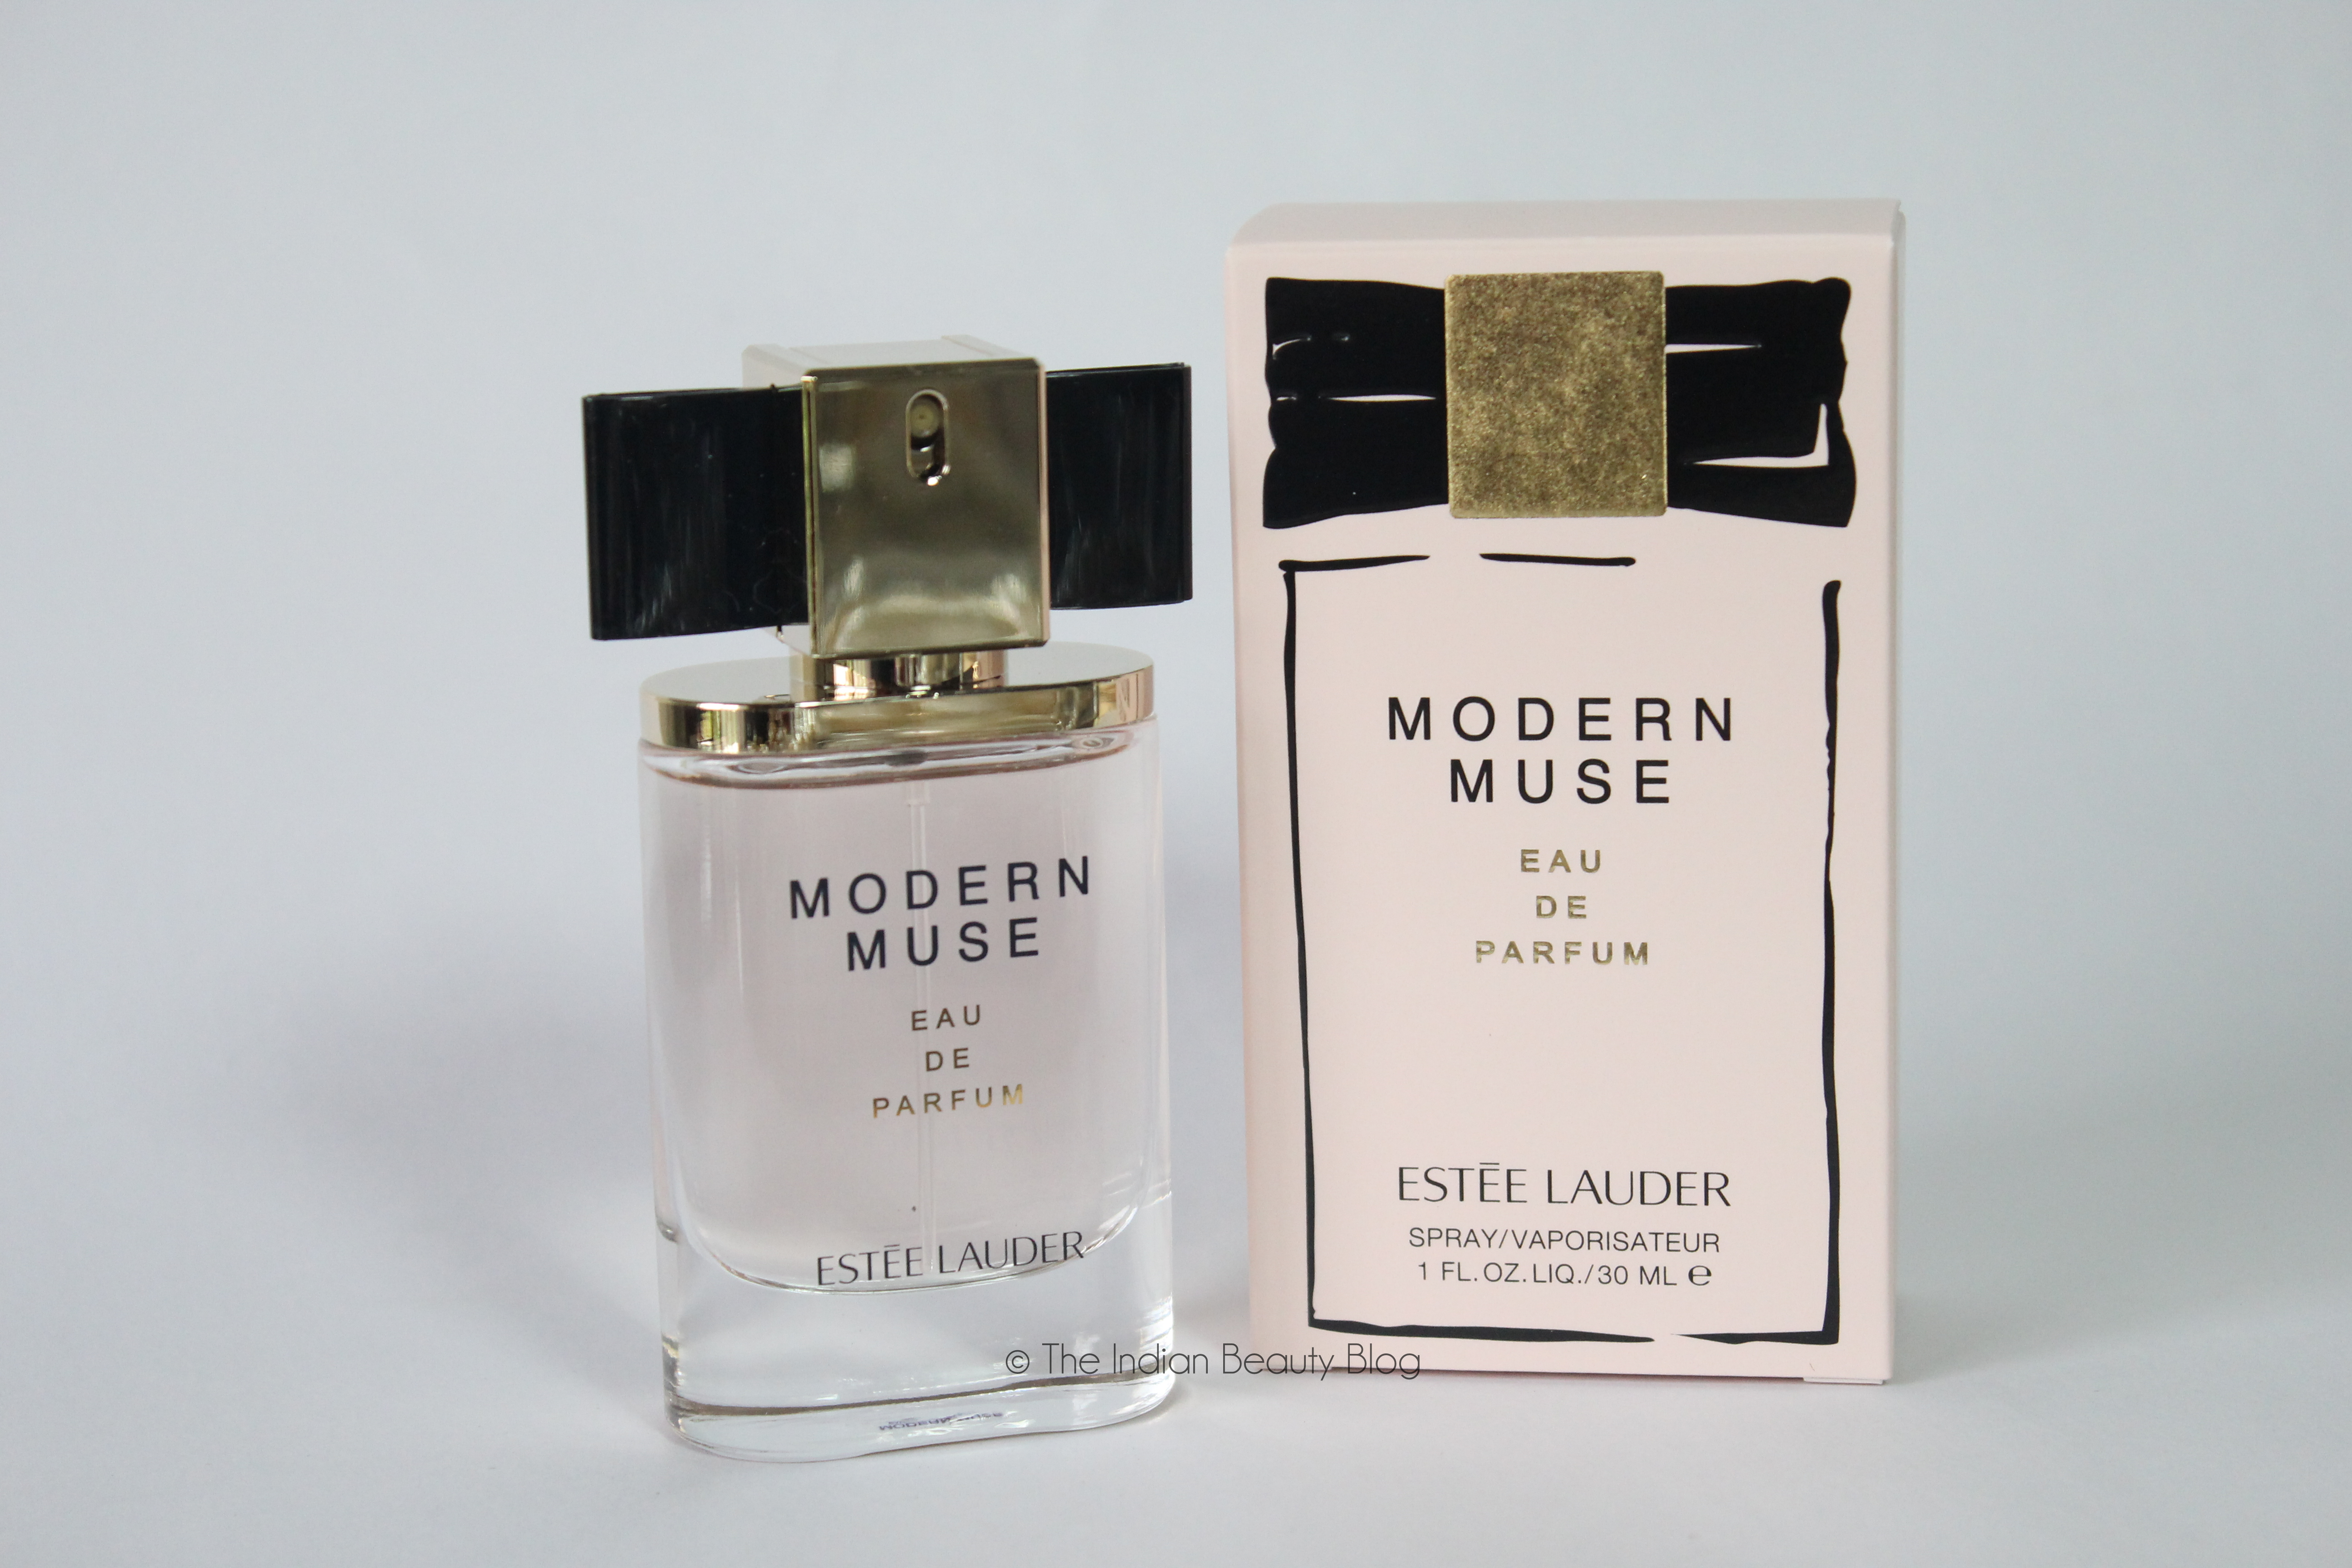 Estee Lauder Modern Muse EDP Review- The Indian Beauty Blog ...